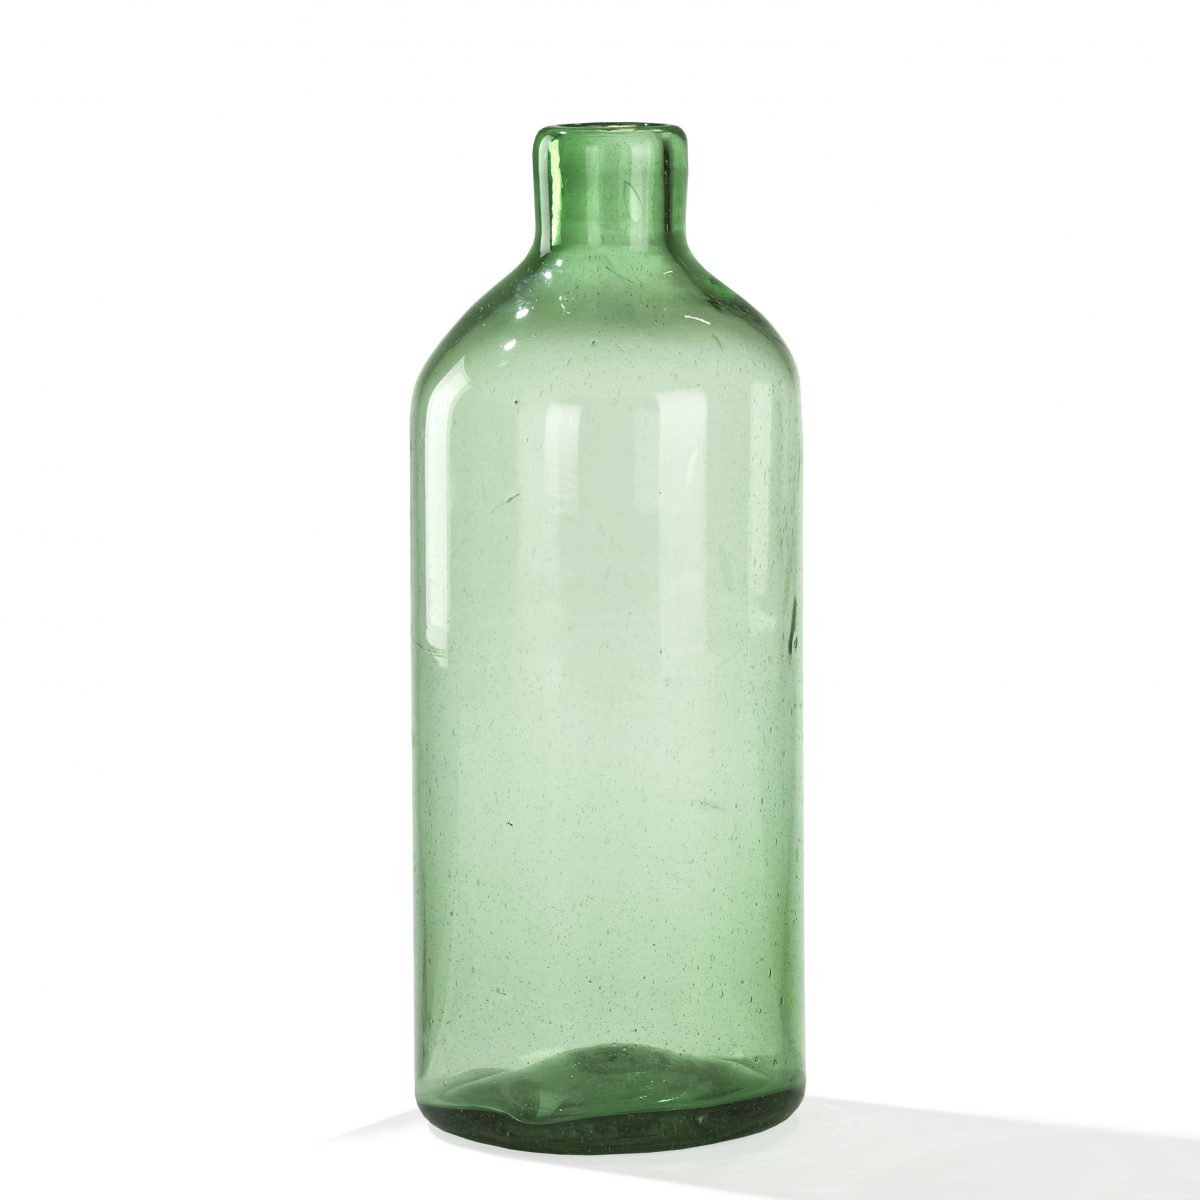 Vase 40 green Van Eijk Vander Lubbe for ID